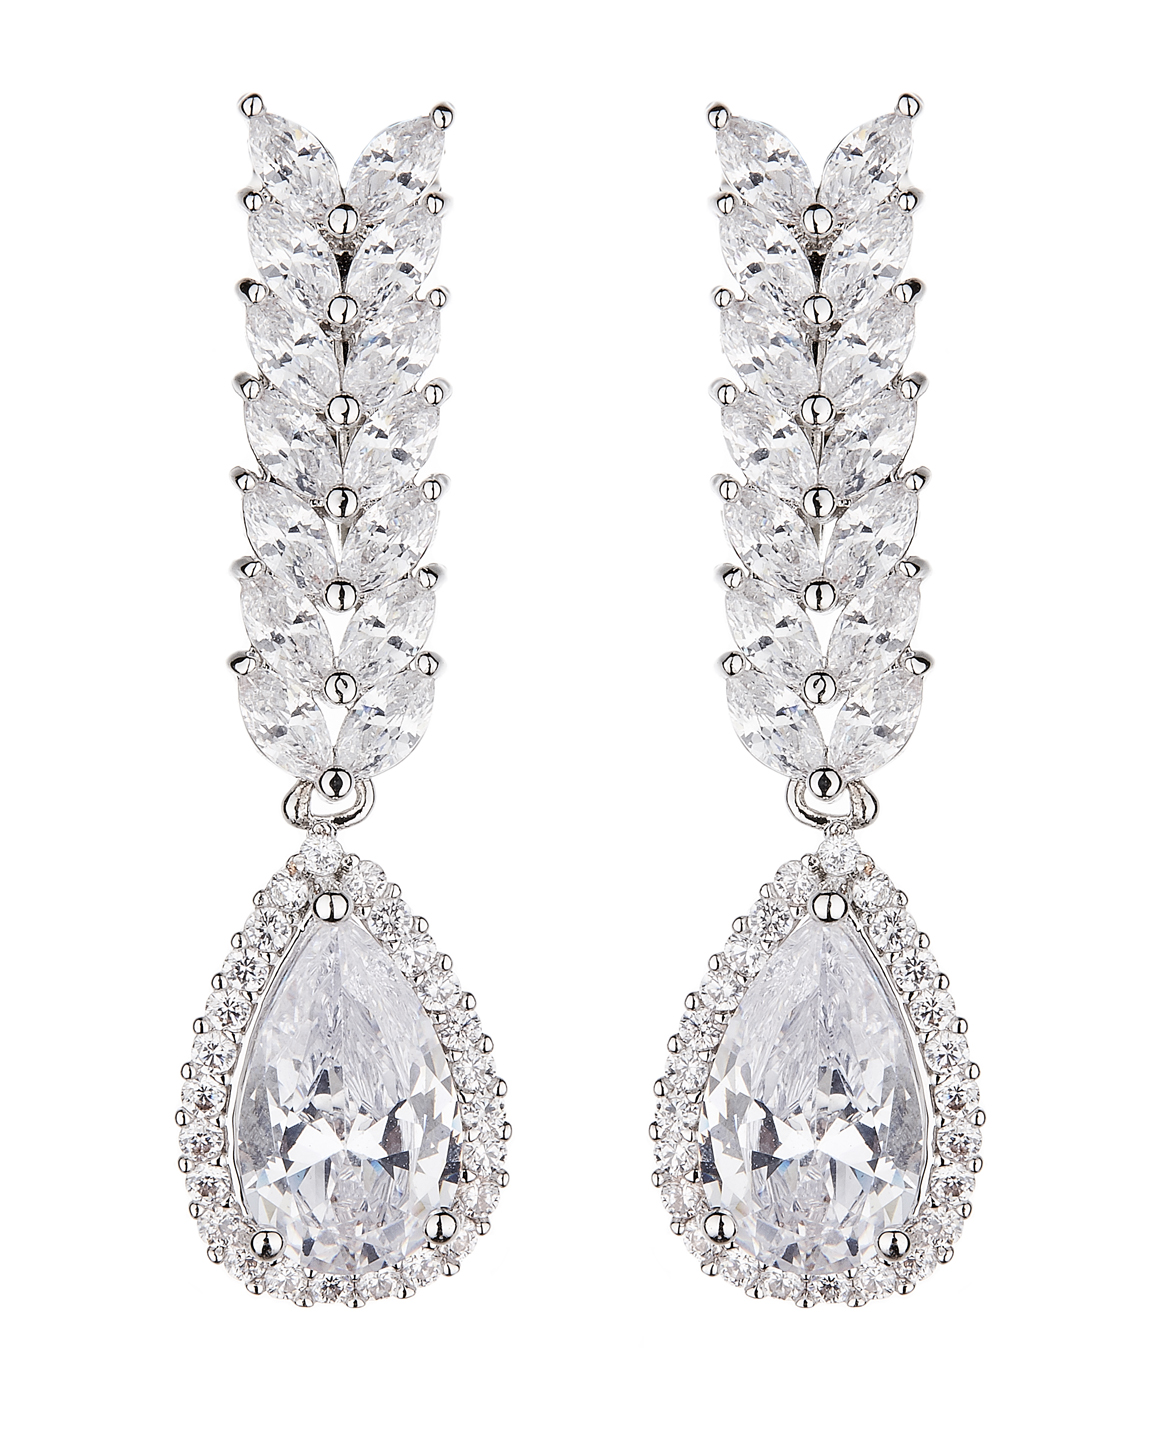 Clip On Earrings - Neena - silver luxury drop earring with cubic zirconia crystals and stones